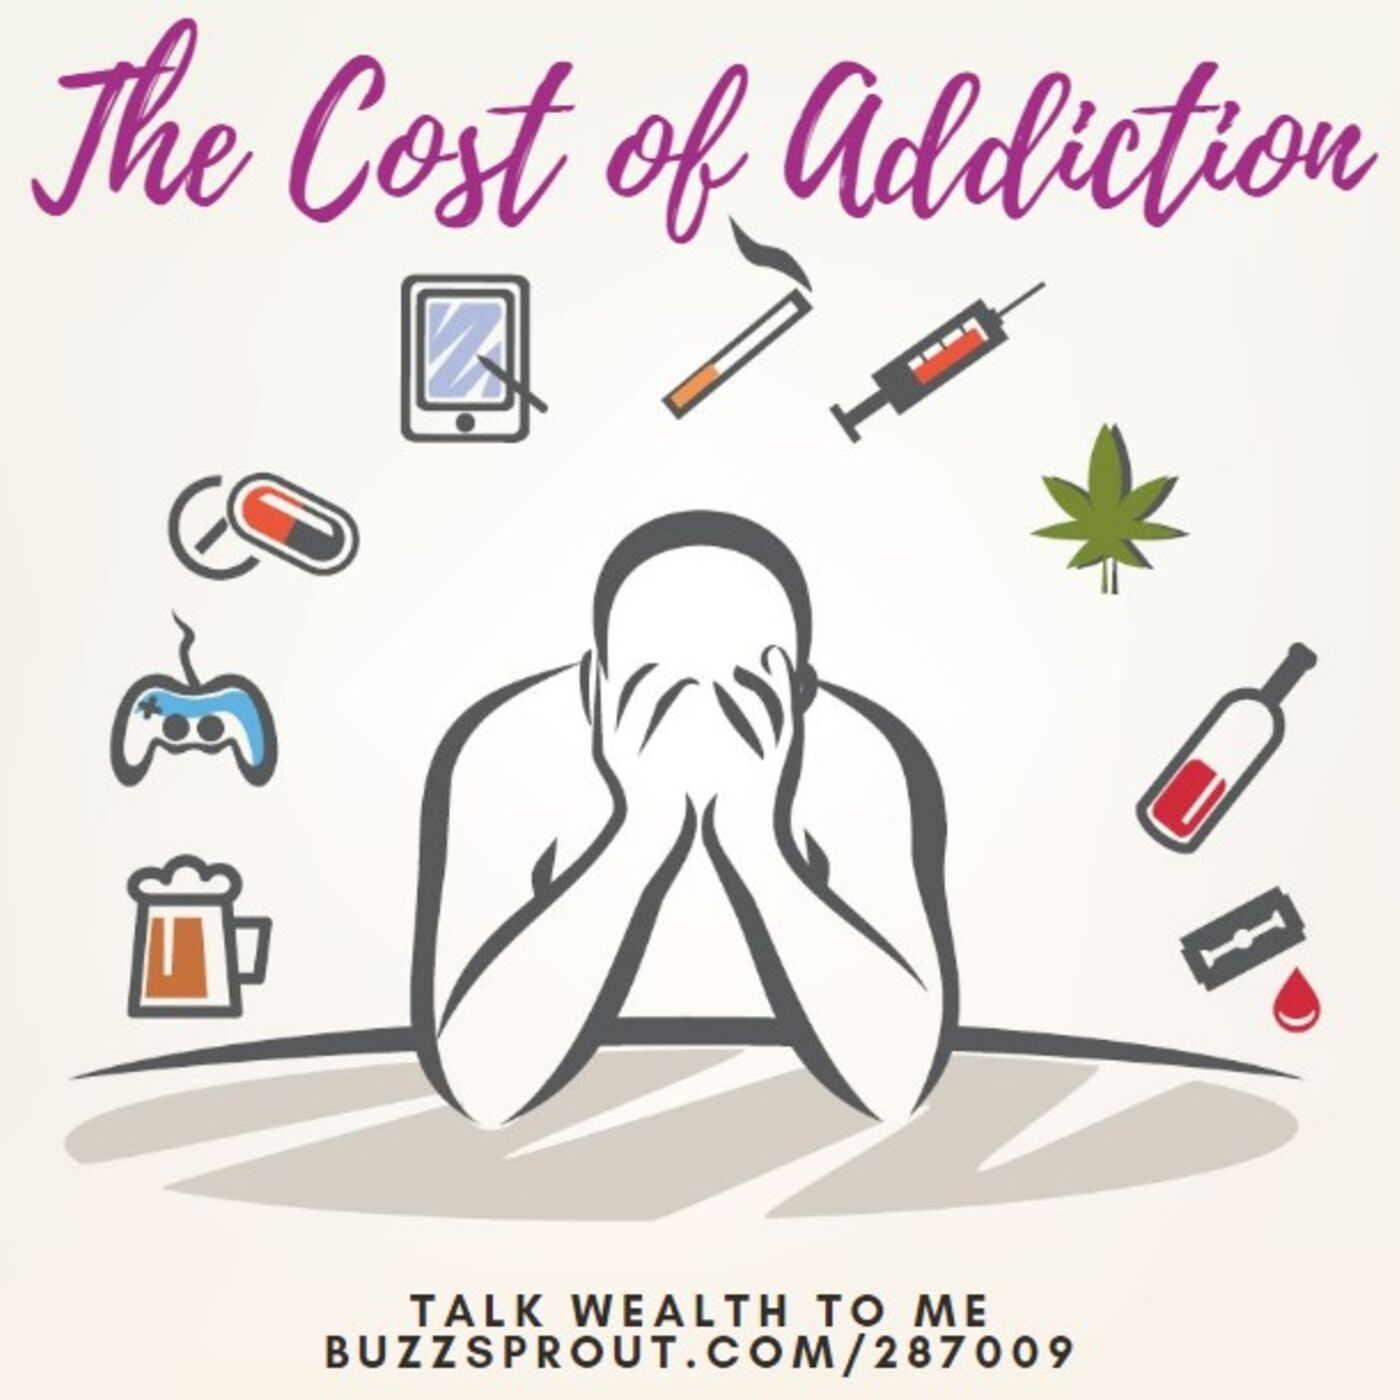 The Cost of Addiction